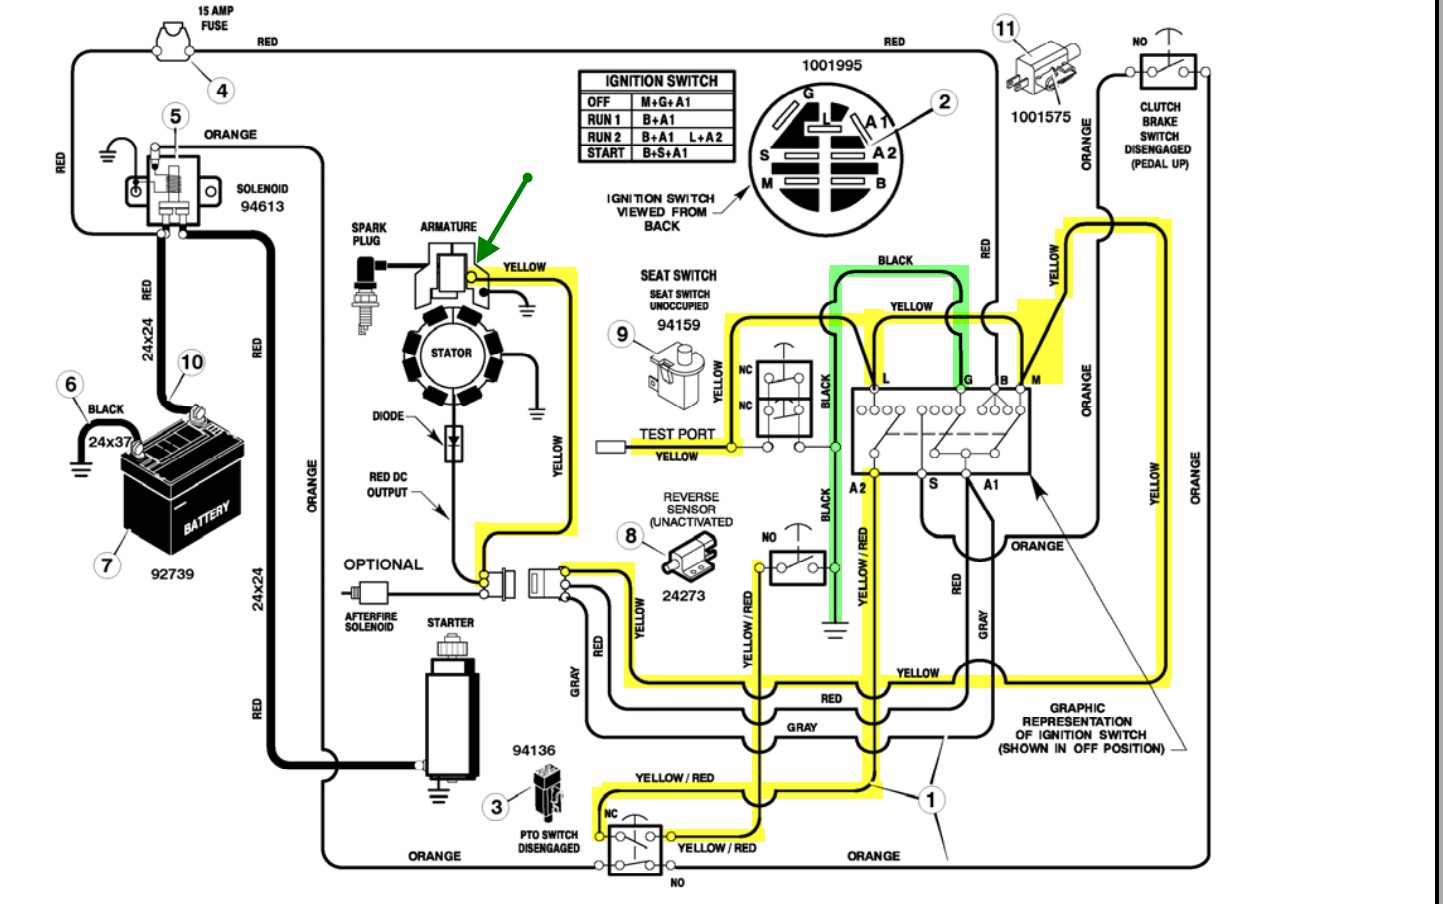 Briggs And Stratton Ignition Coil Wiring Diagram | Wiring Diagram - Briggs And Stratton Magneto Wiring Diagram